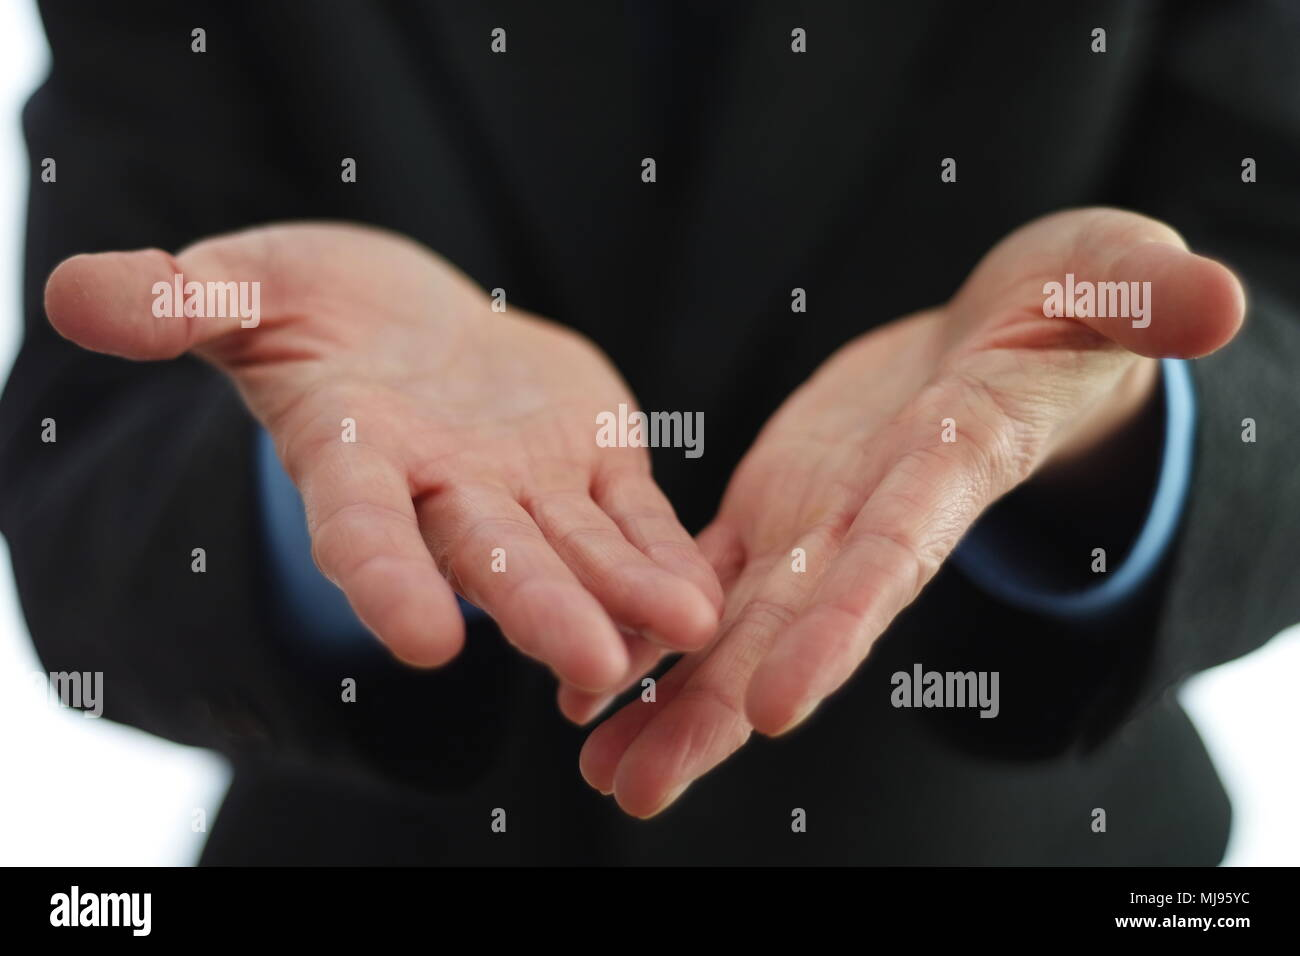 Offering something with hands Stock Photo